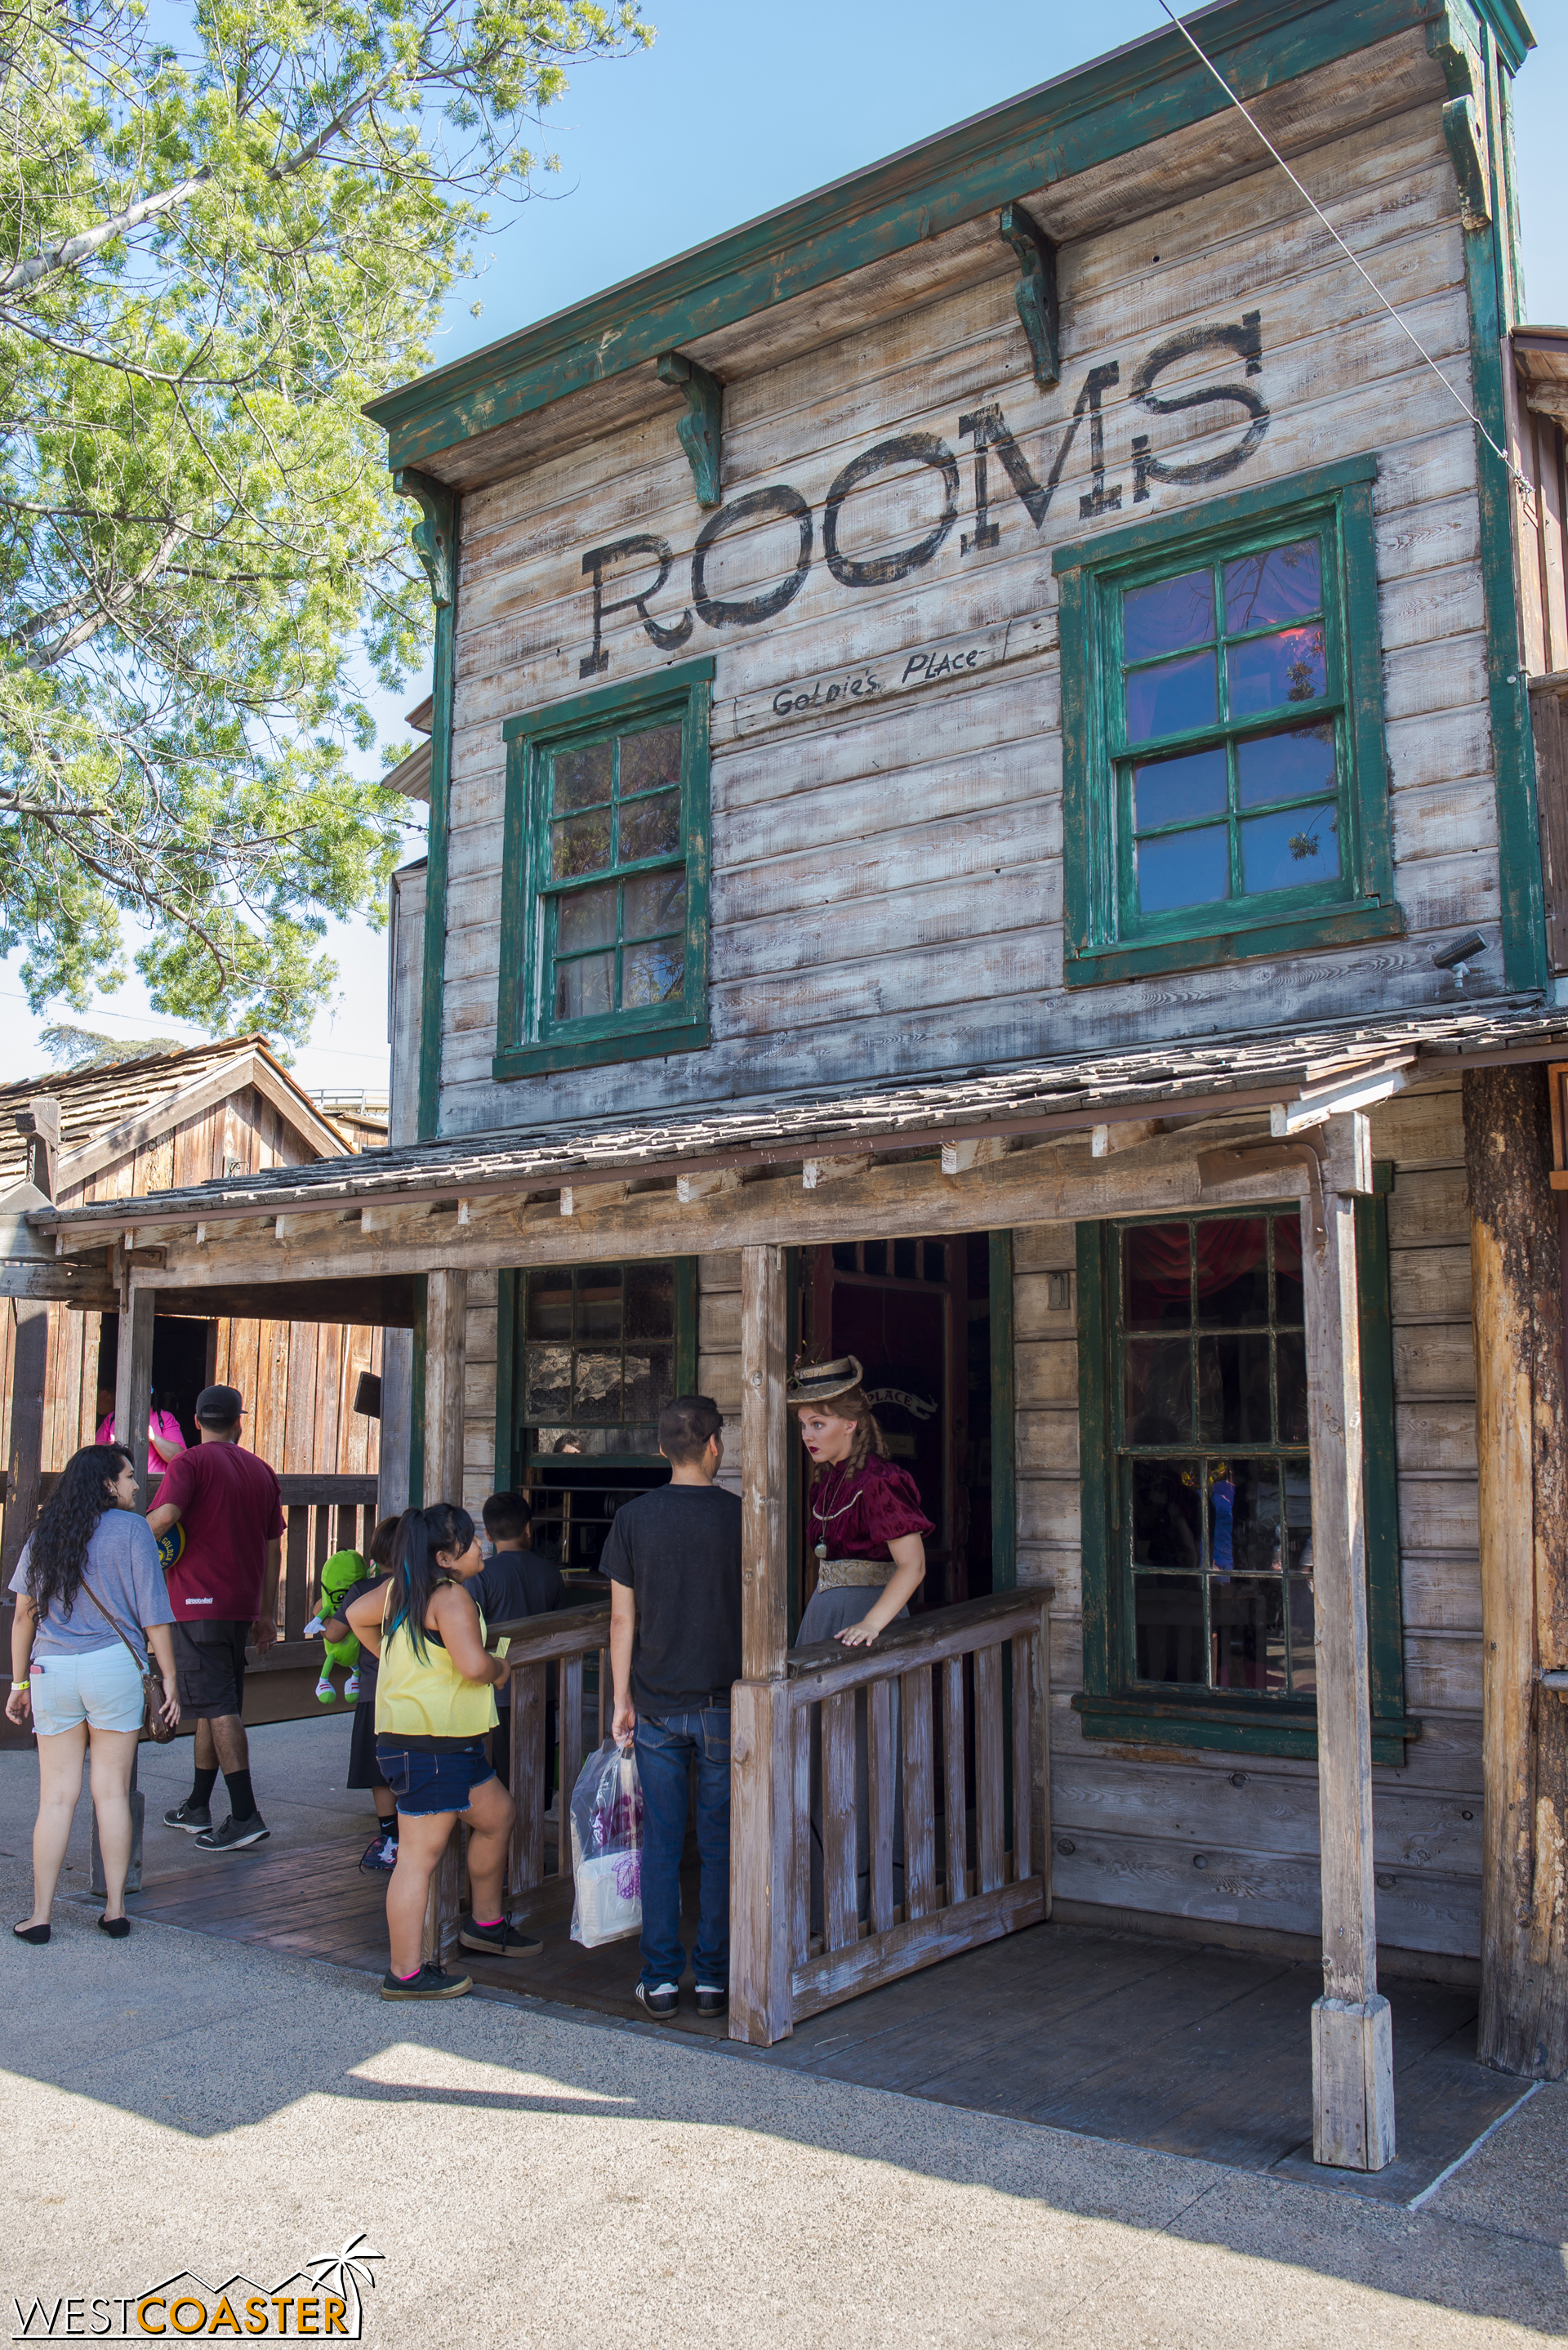 Goldie's Place is a popular destination for weary visiting travelers.